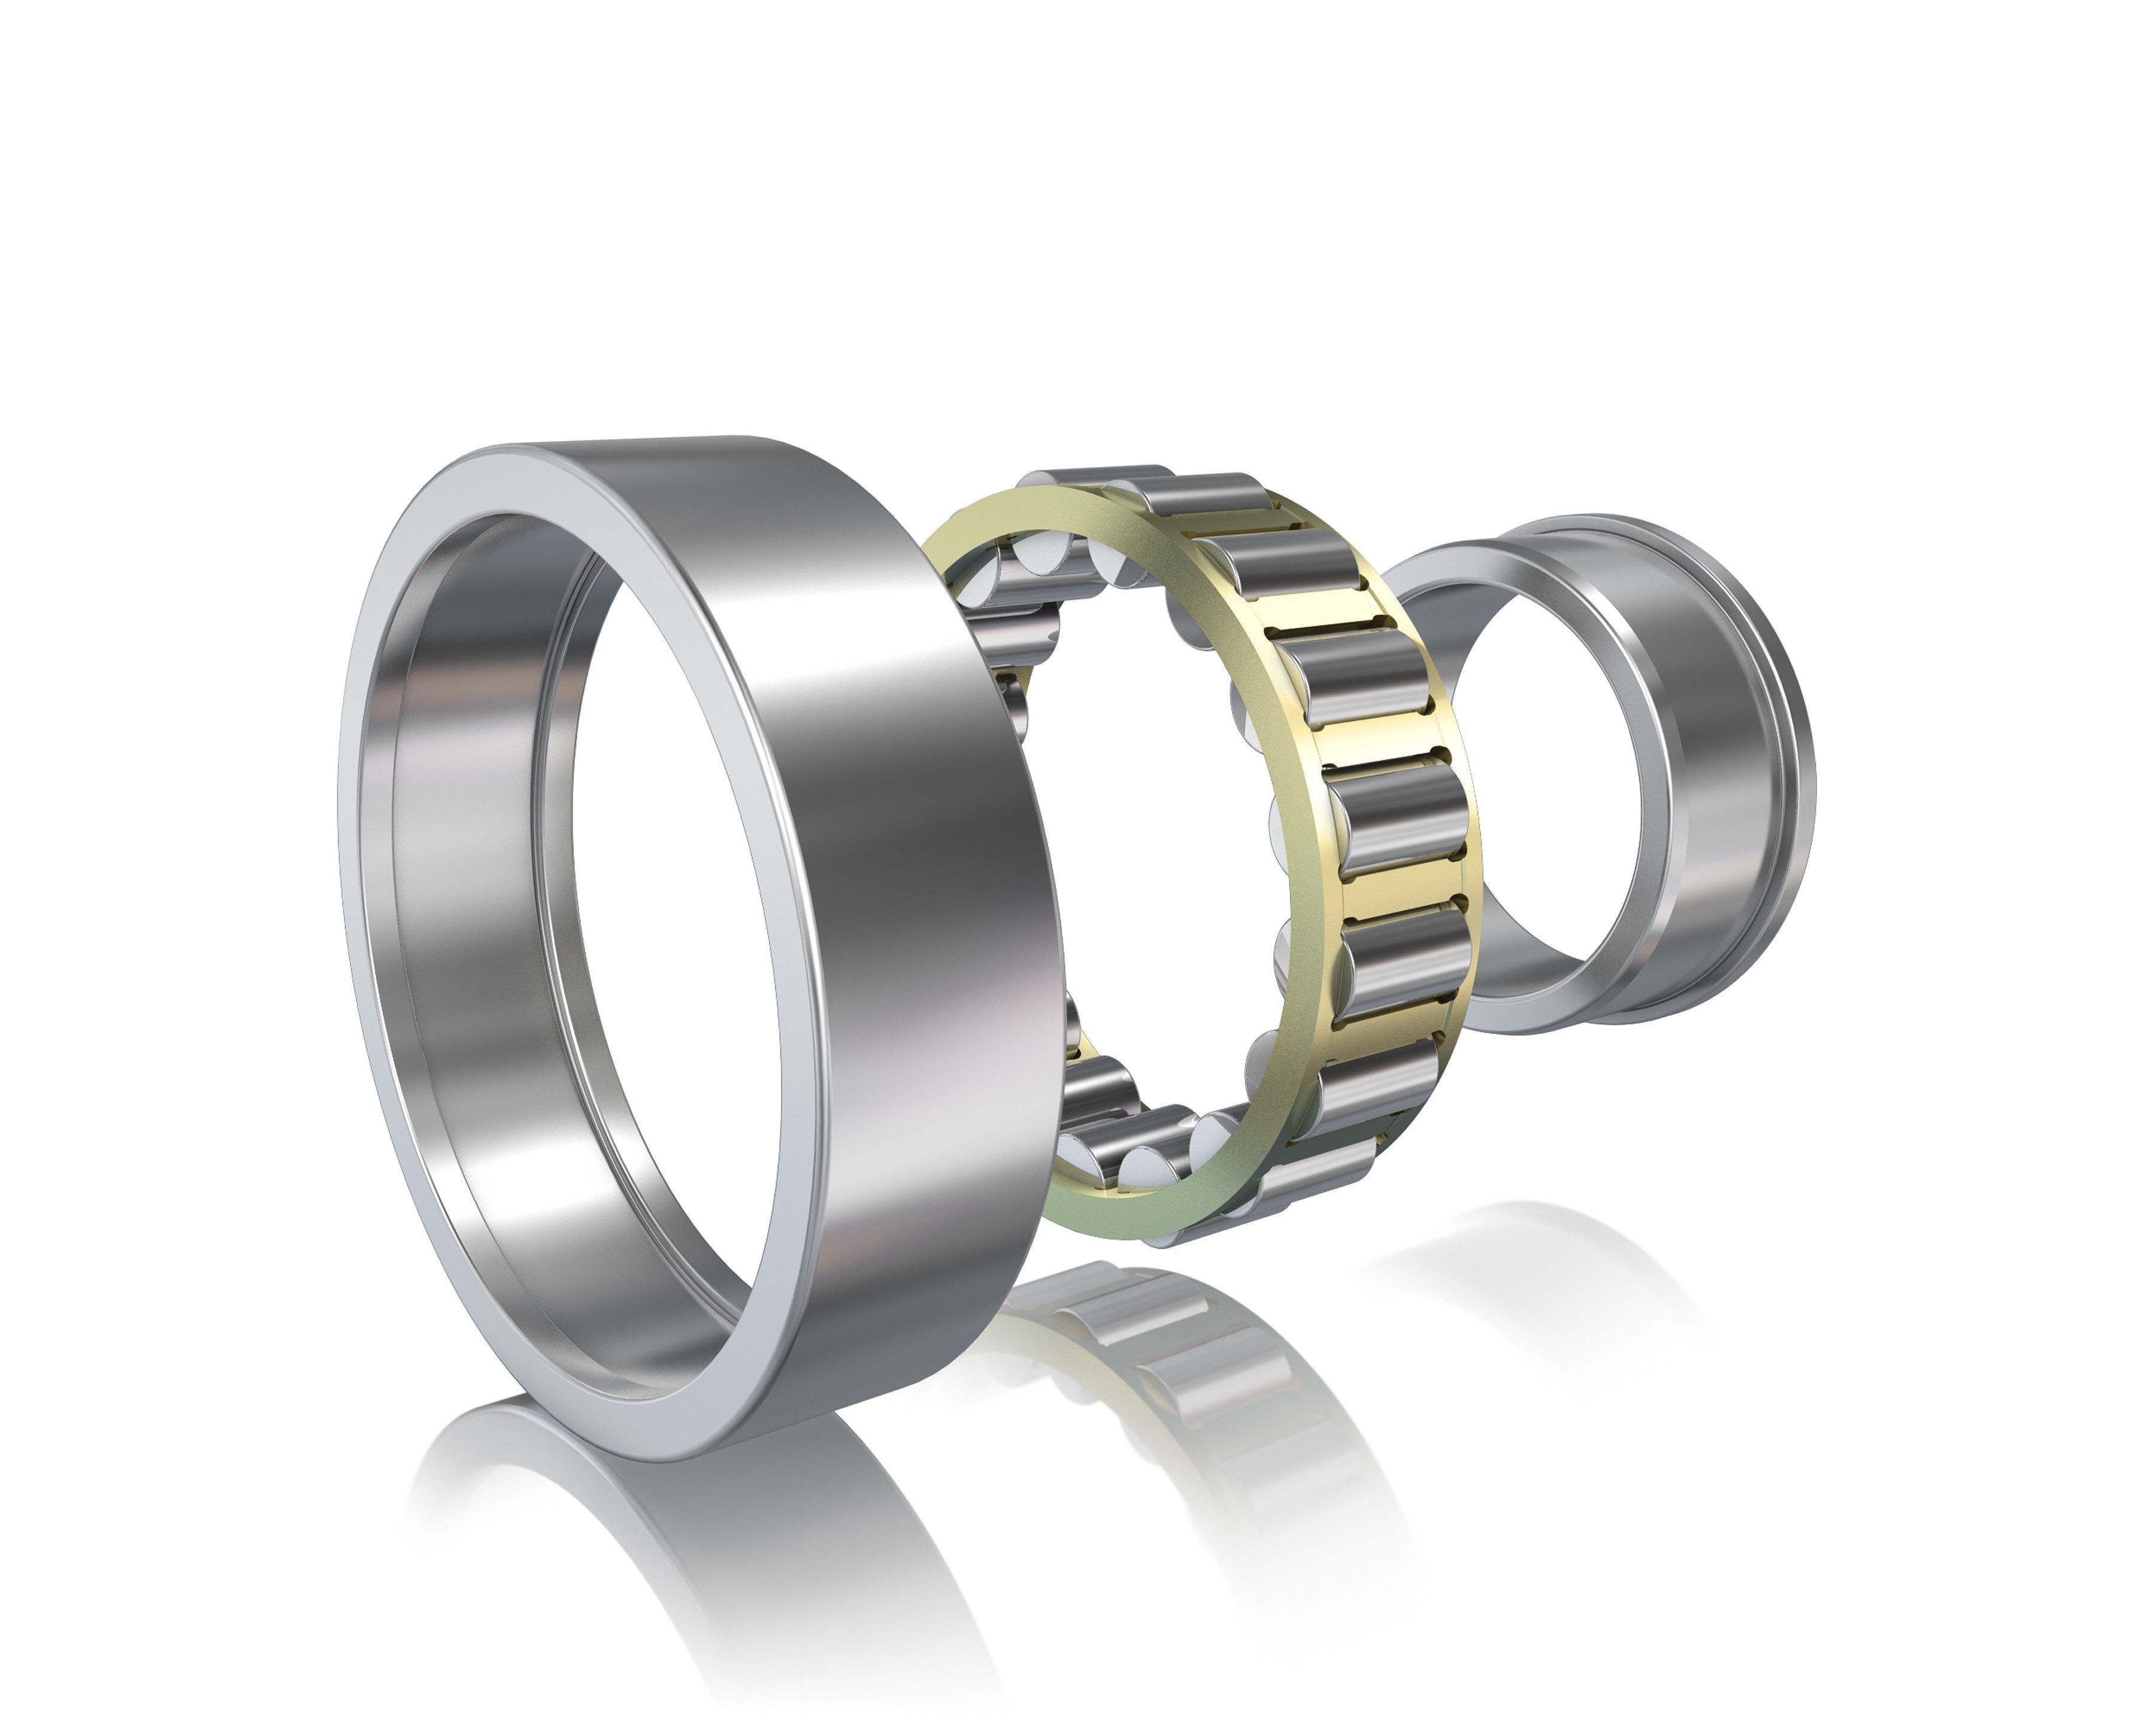 NJ310-ECJ-SKF, Bearings, Cylindrical roller bearings